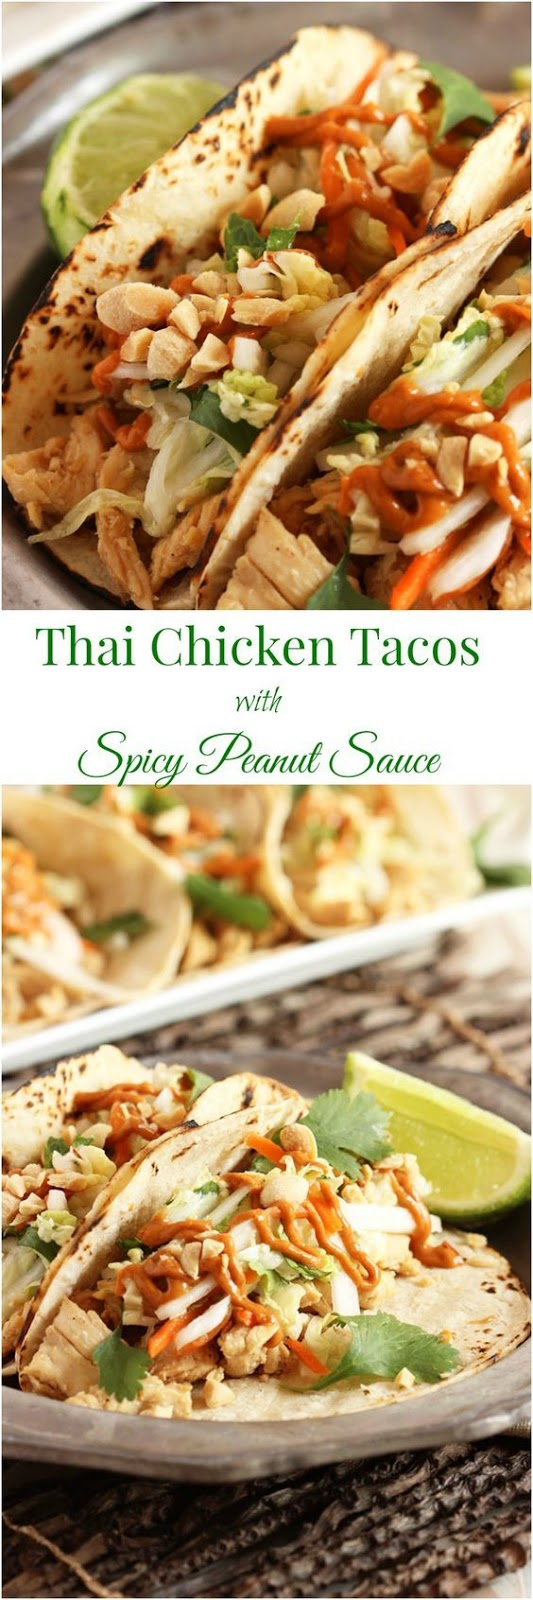 Thai Chicken Tacos with Spicy Peanut Sauce